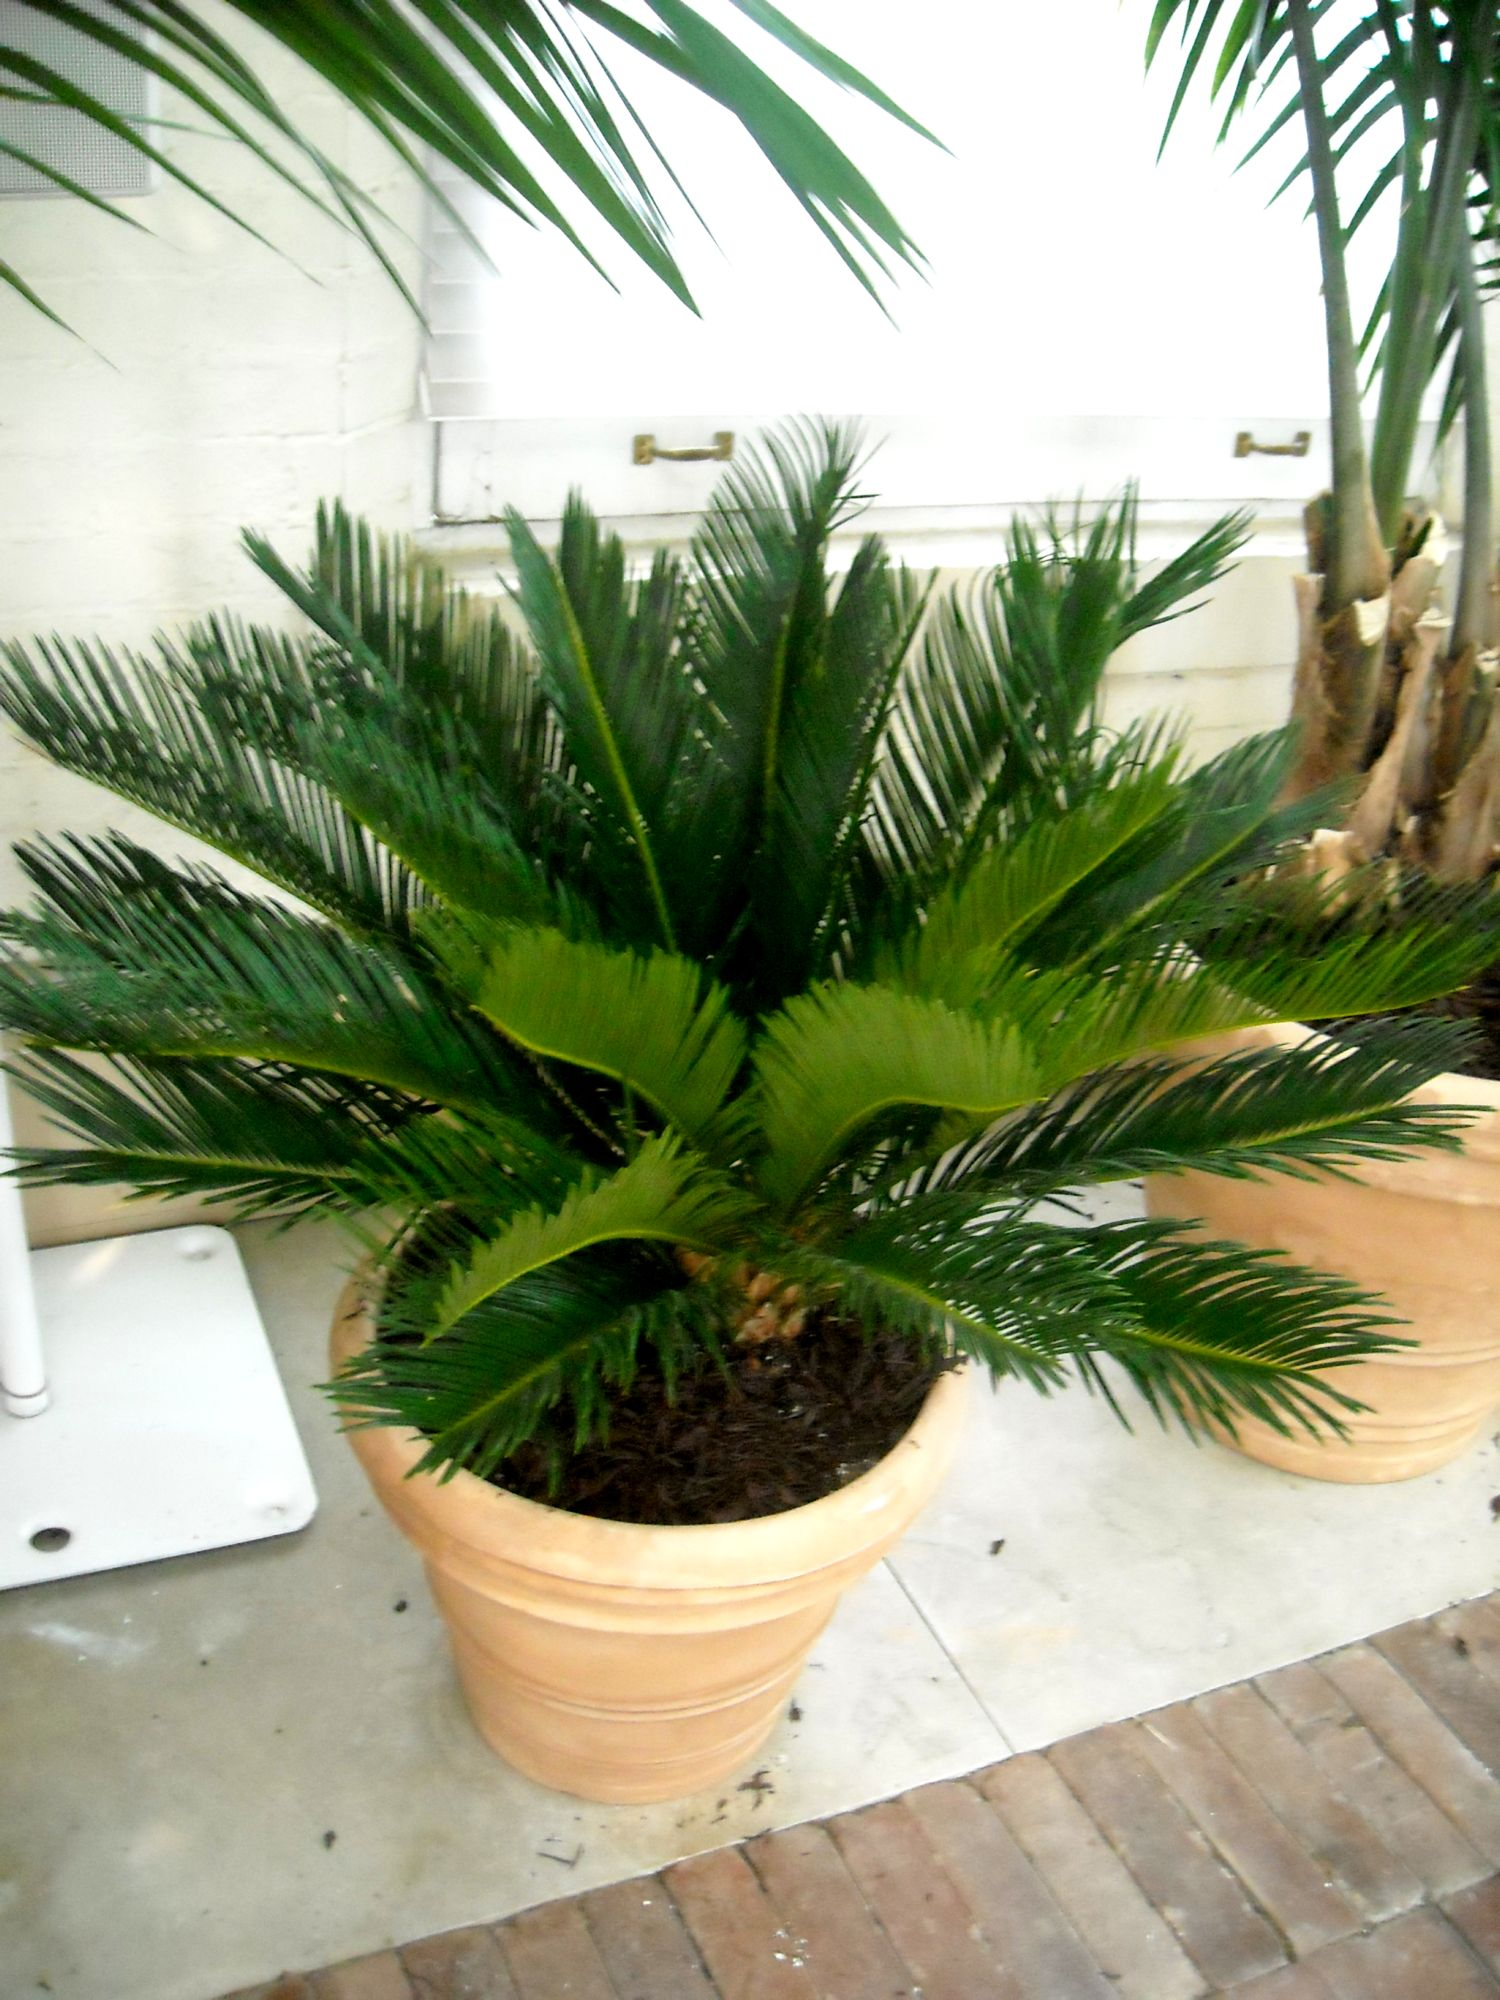 dscn0741 Types Of Tree Palm House Plant List on house plant umbrella tree, indoor palm plants types, like palm plants types, house with palm trees, dracaena house plant types, house plants that look like trees, lady palm tree types, house plant schefflera actinophylla, indoor ponytail palm tree types, small indoor palm tree types, identify tree types, house plants palms identify, house plants at lowe's, house plant rubber tree, south florida palm tree types, double trunk palm tree types, home plants types, house plant banana tree, palm names types,